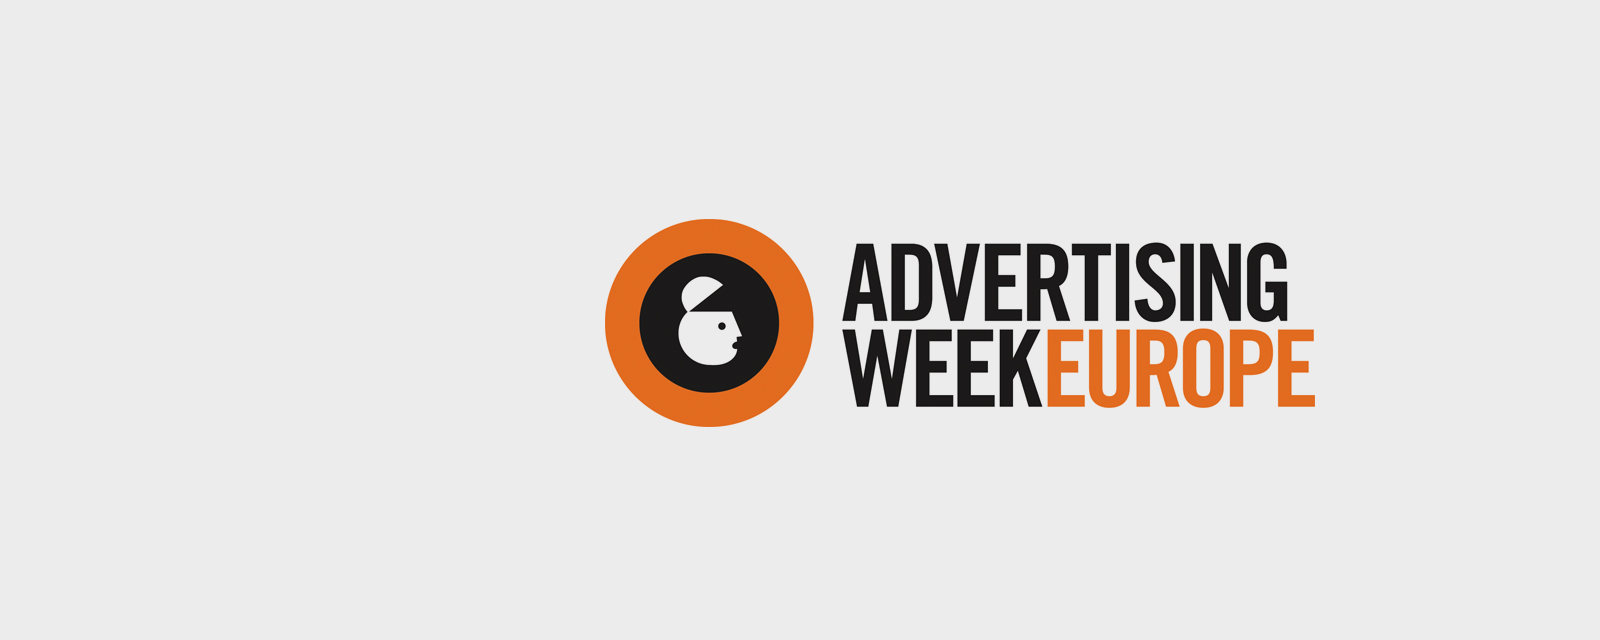 BBC and BuzzFeed join Weber Shandwick to discuss fake news at AdWeek Europe